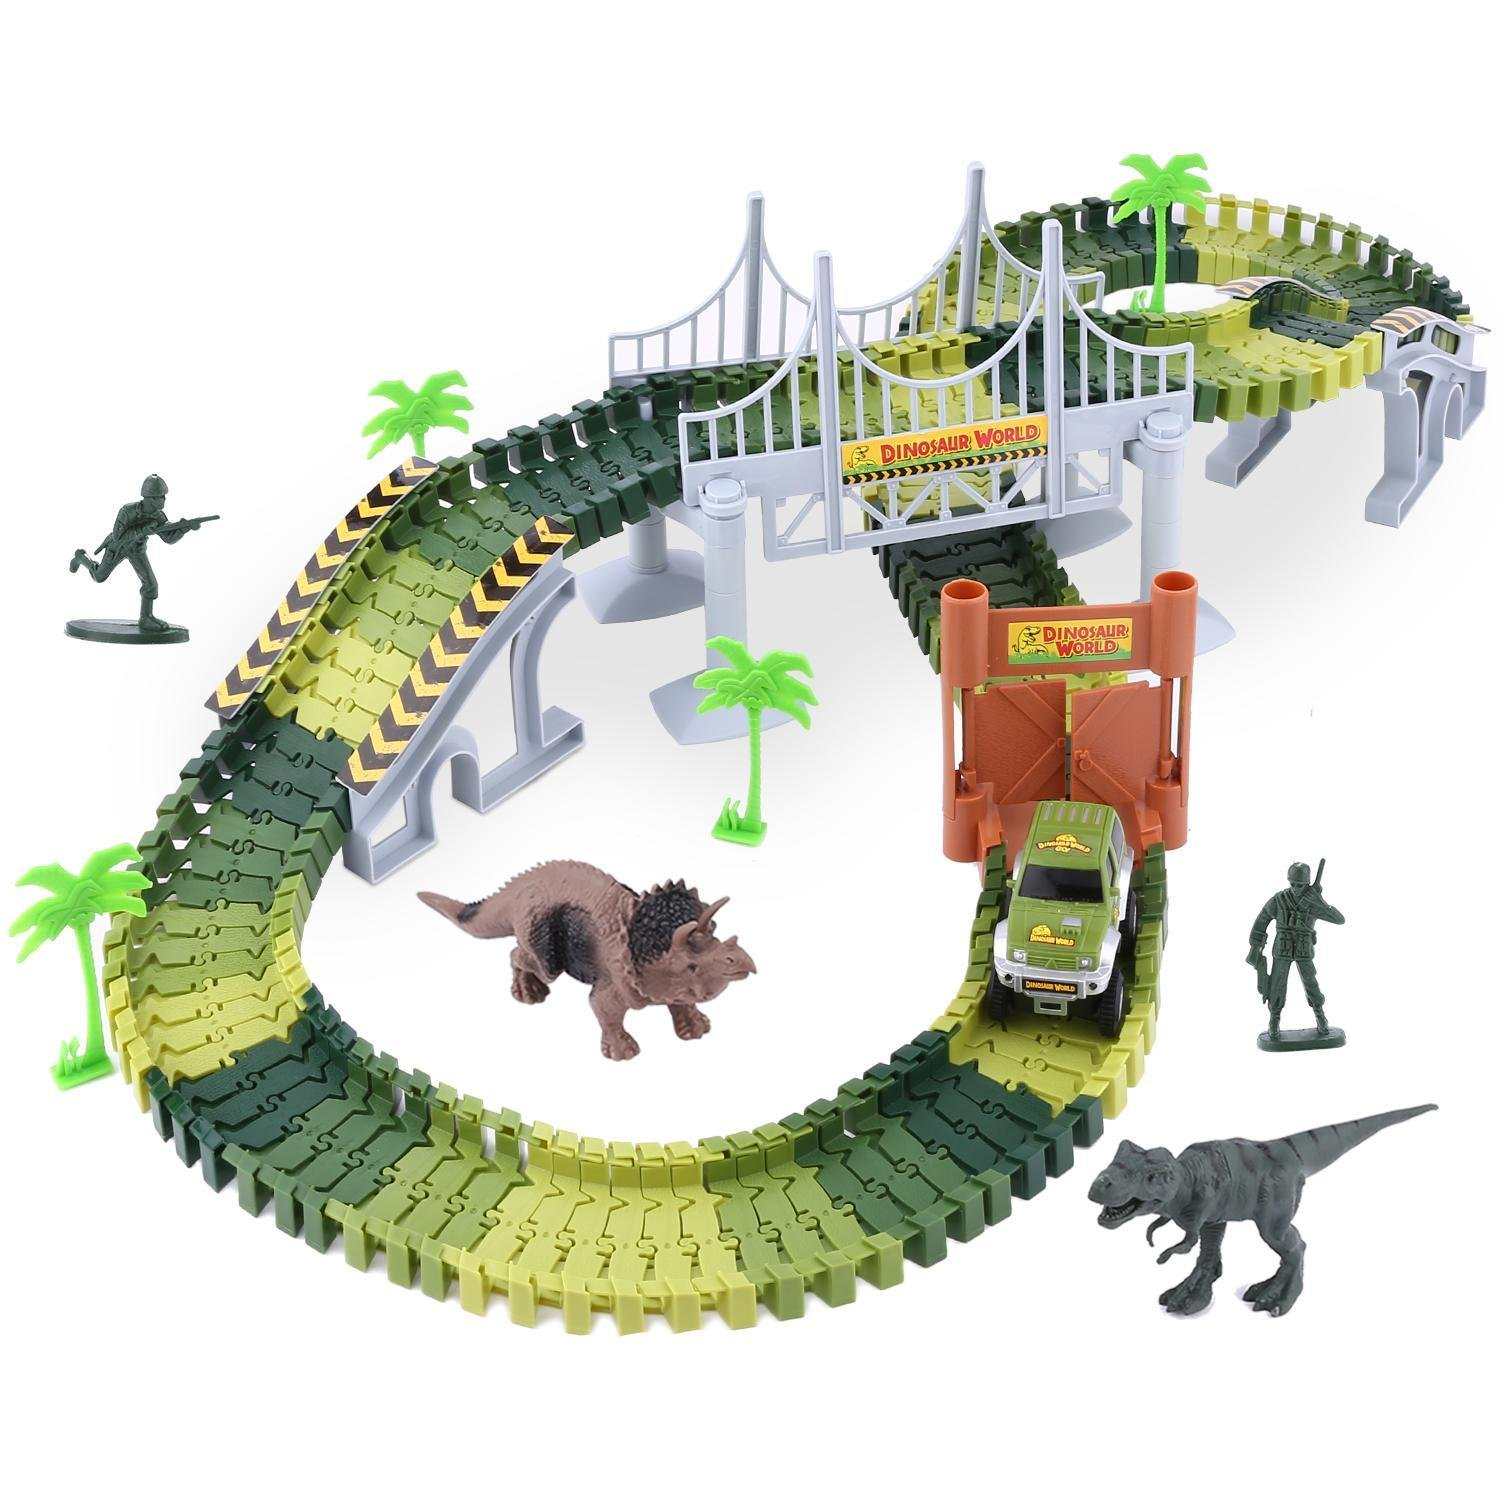 Meflying Military World Race Track Dinosaur World Bridge Railway Set, 142 Piece Track Pieces & Flexible Track Playset with Toy Cars, 2 Dinosaurs, Best Toy Gift to Children